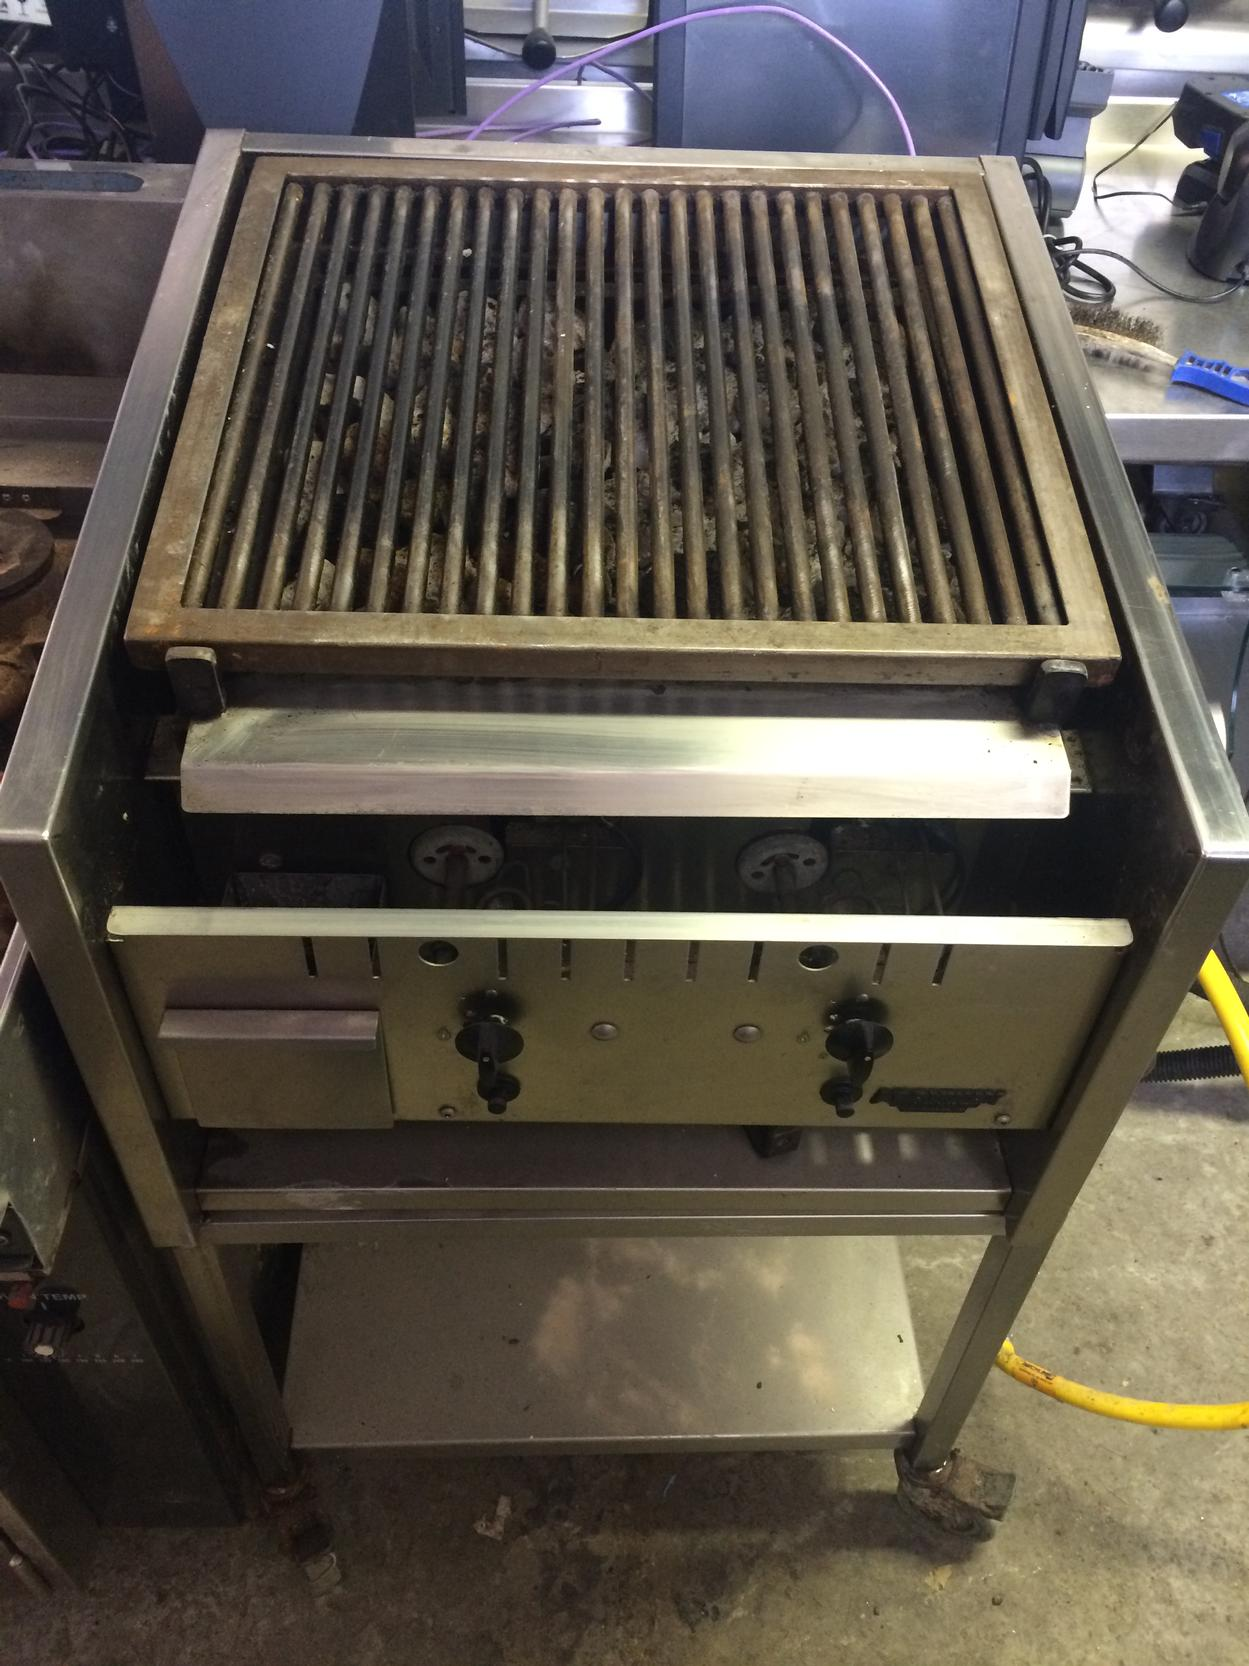 Archway 2 burner gas chargrill